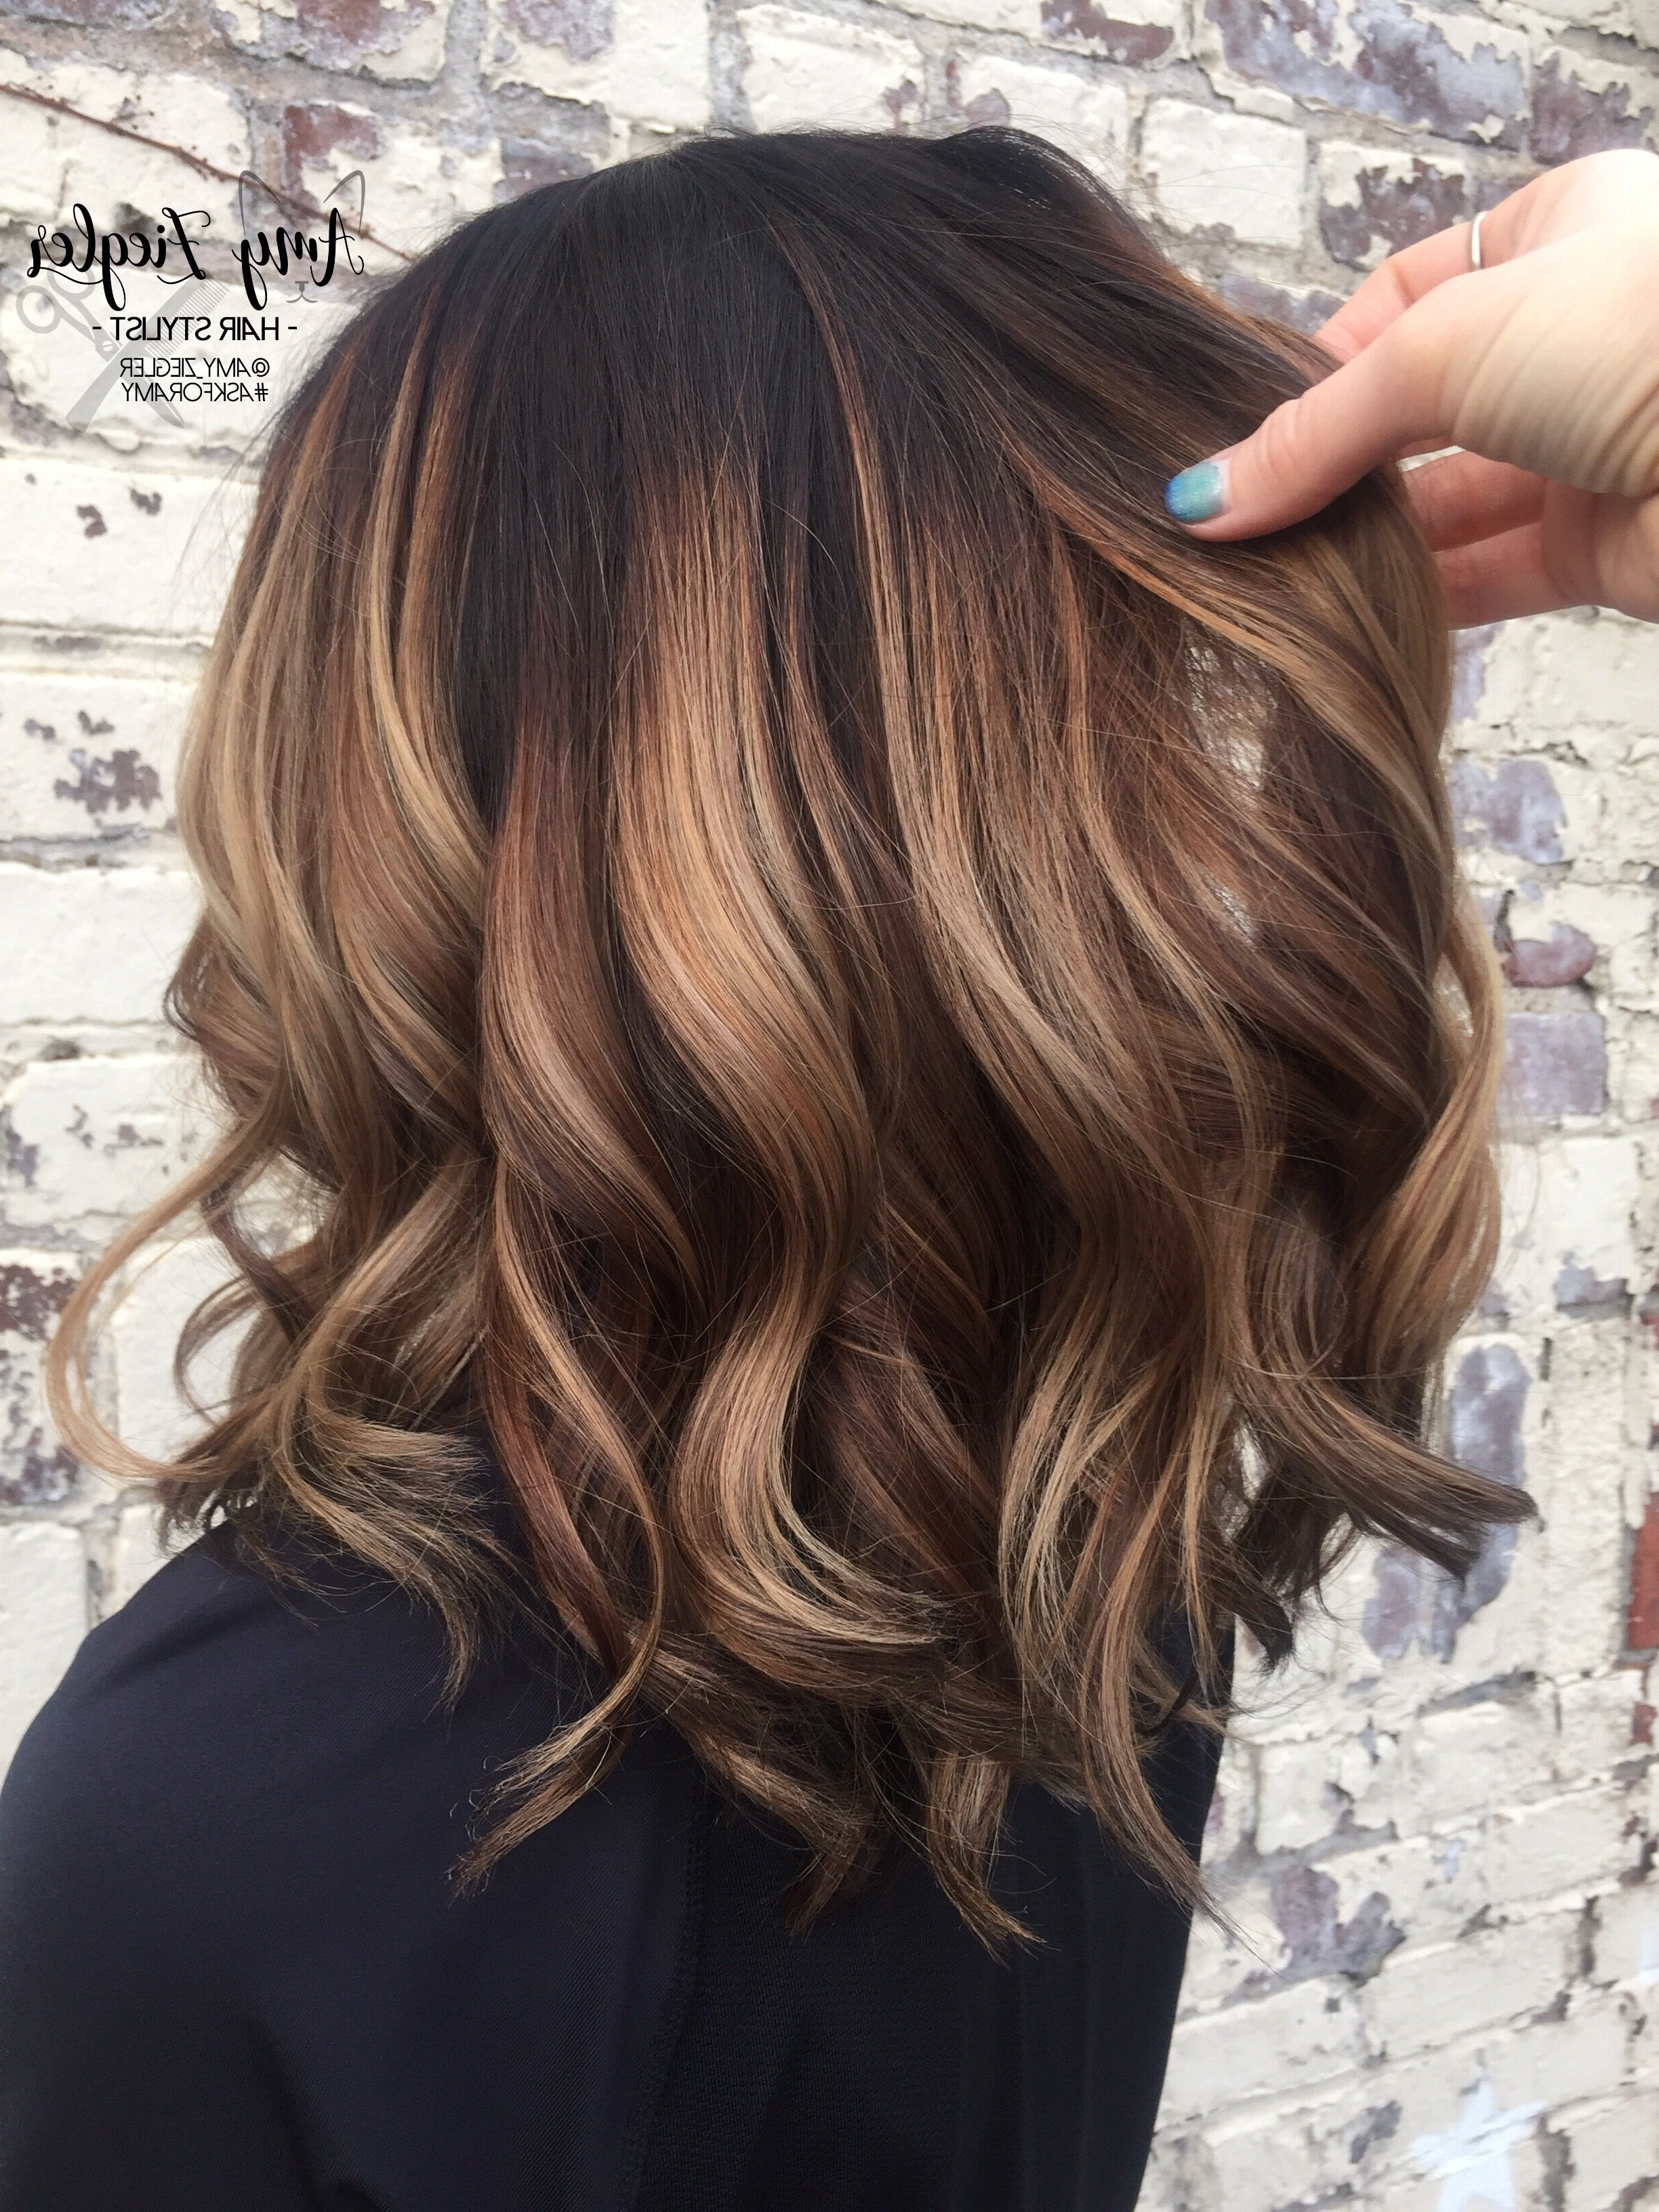 Chunky Blonde Balayage On Dark Hair@askforamy #askforamy Throughout Recent Shaggy Pixie Hairstyles With Balayage Highlights (View 10 of 20)